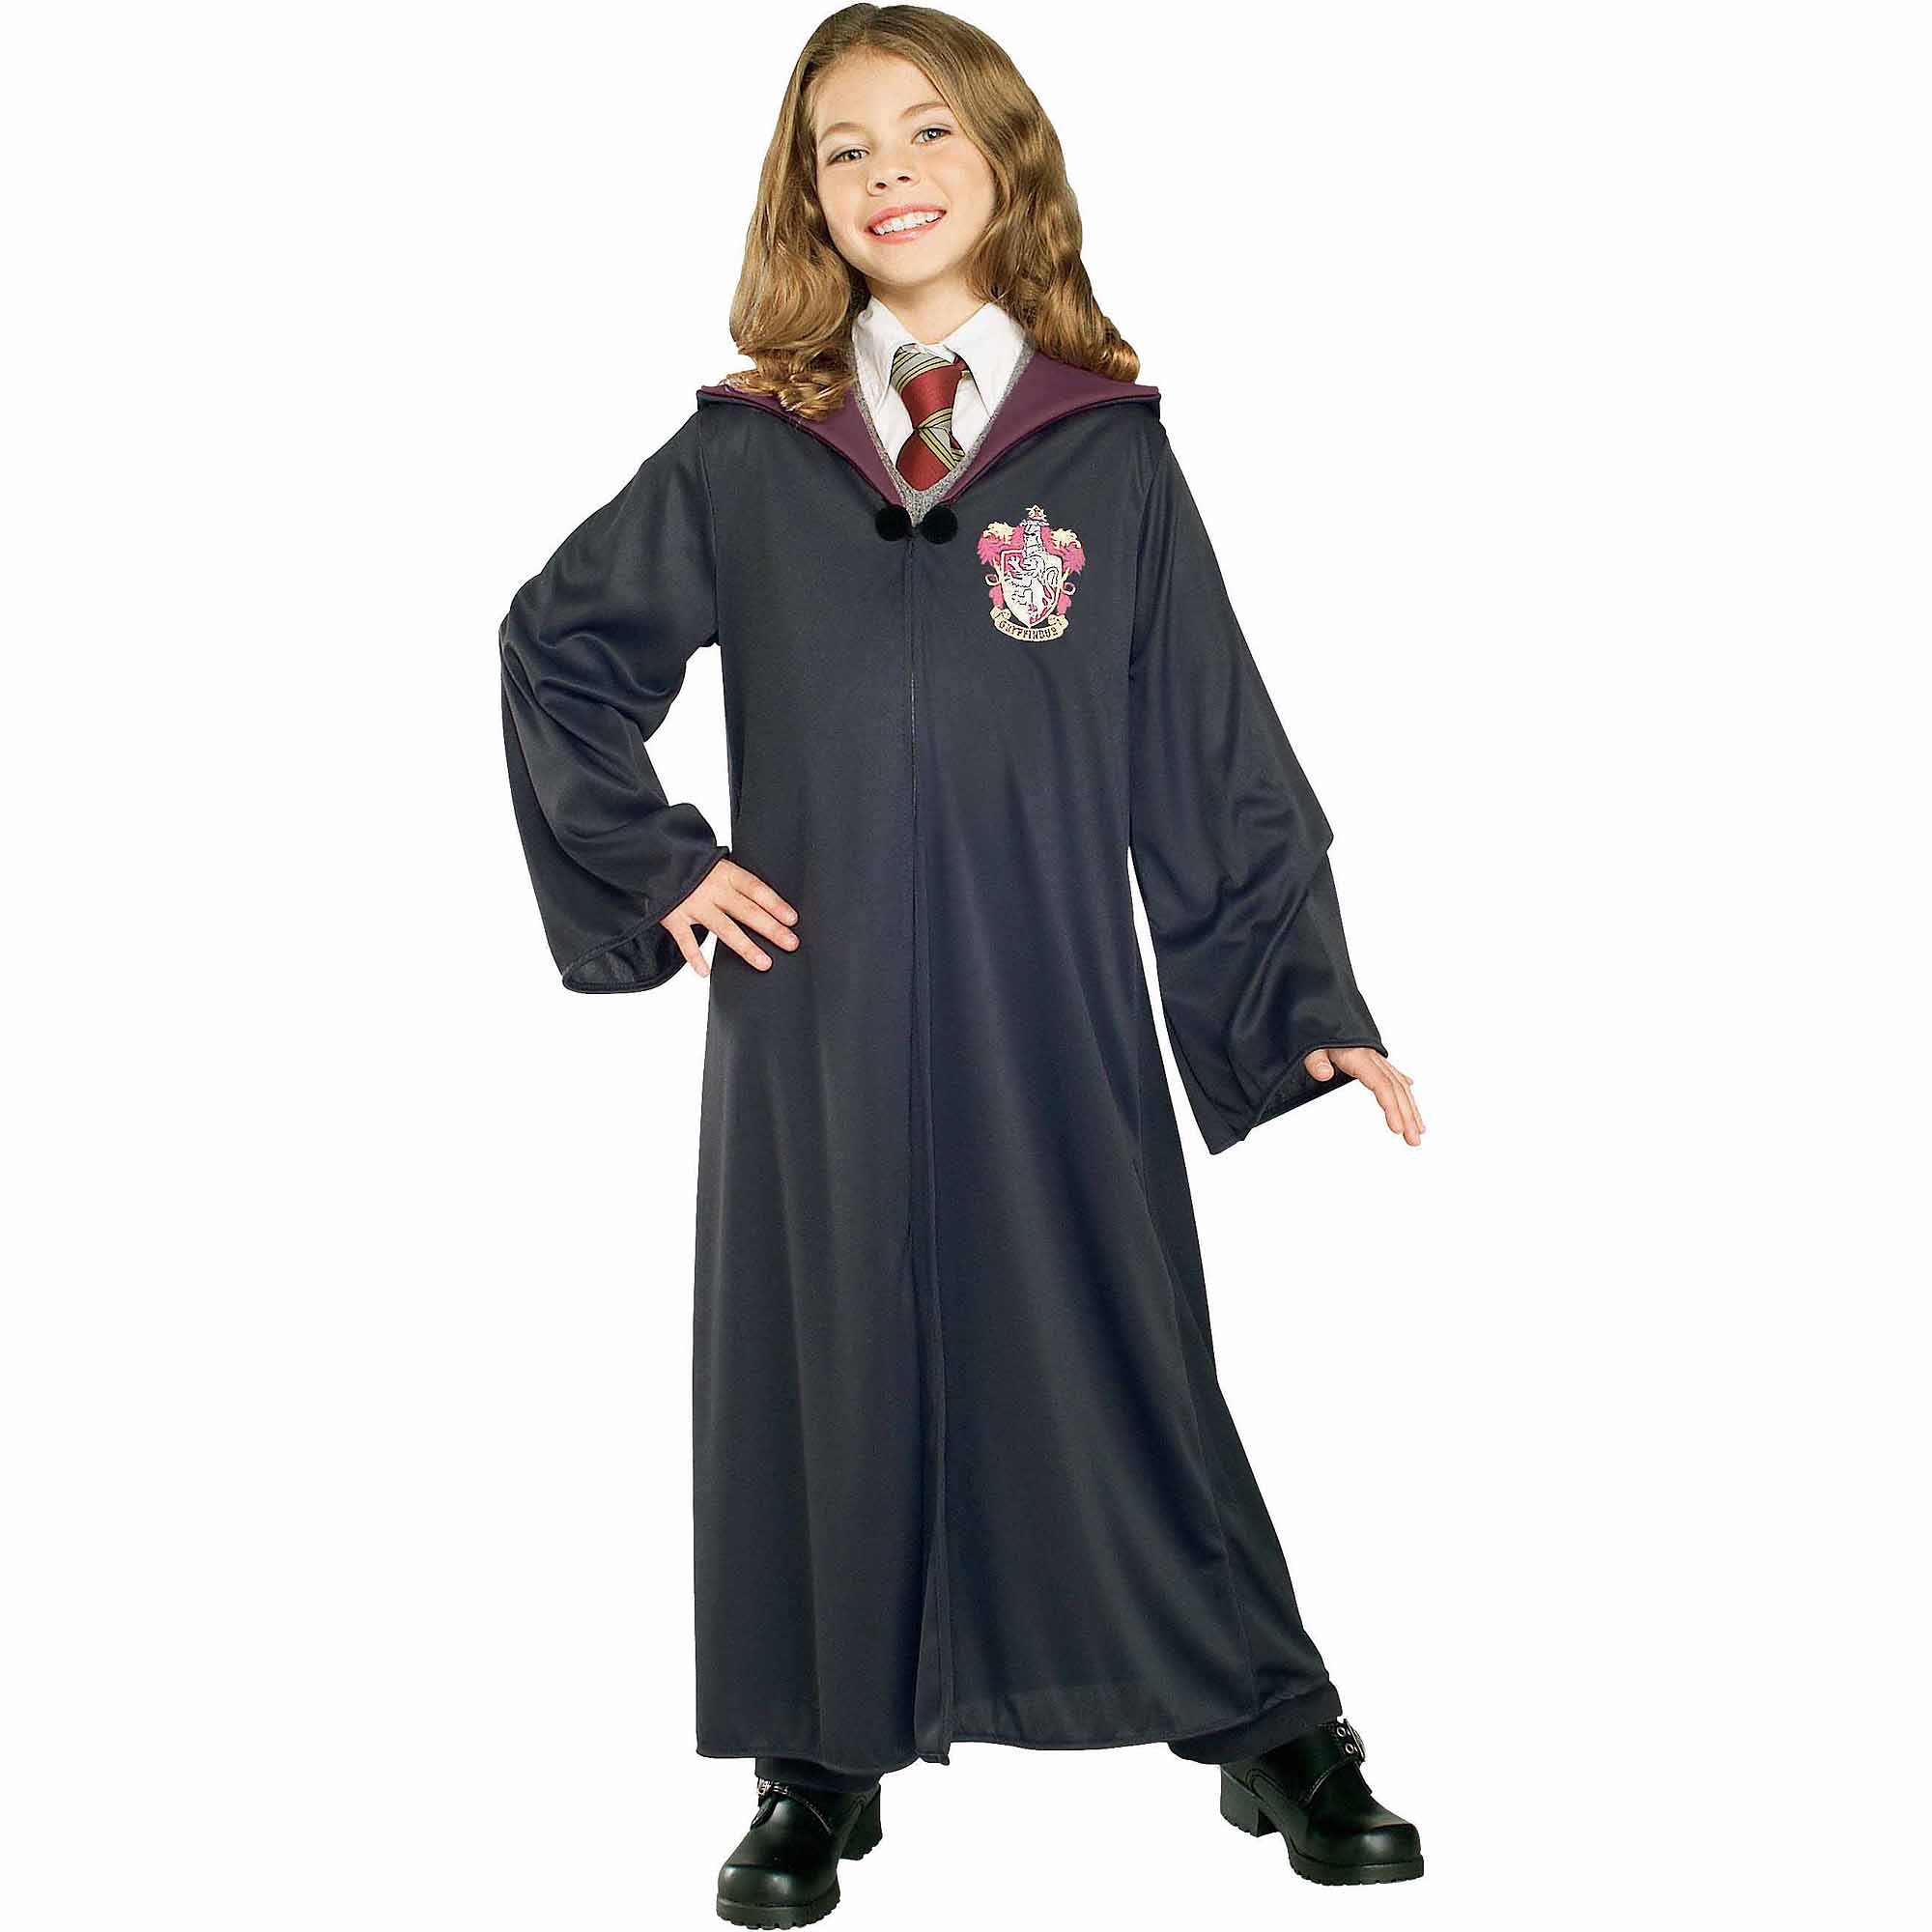 Harry Potter Gryffindor Robe Child Halloween Costume   Walmart.com